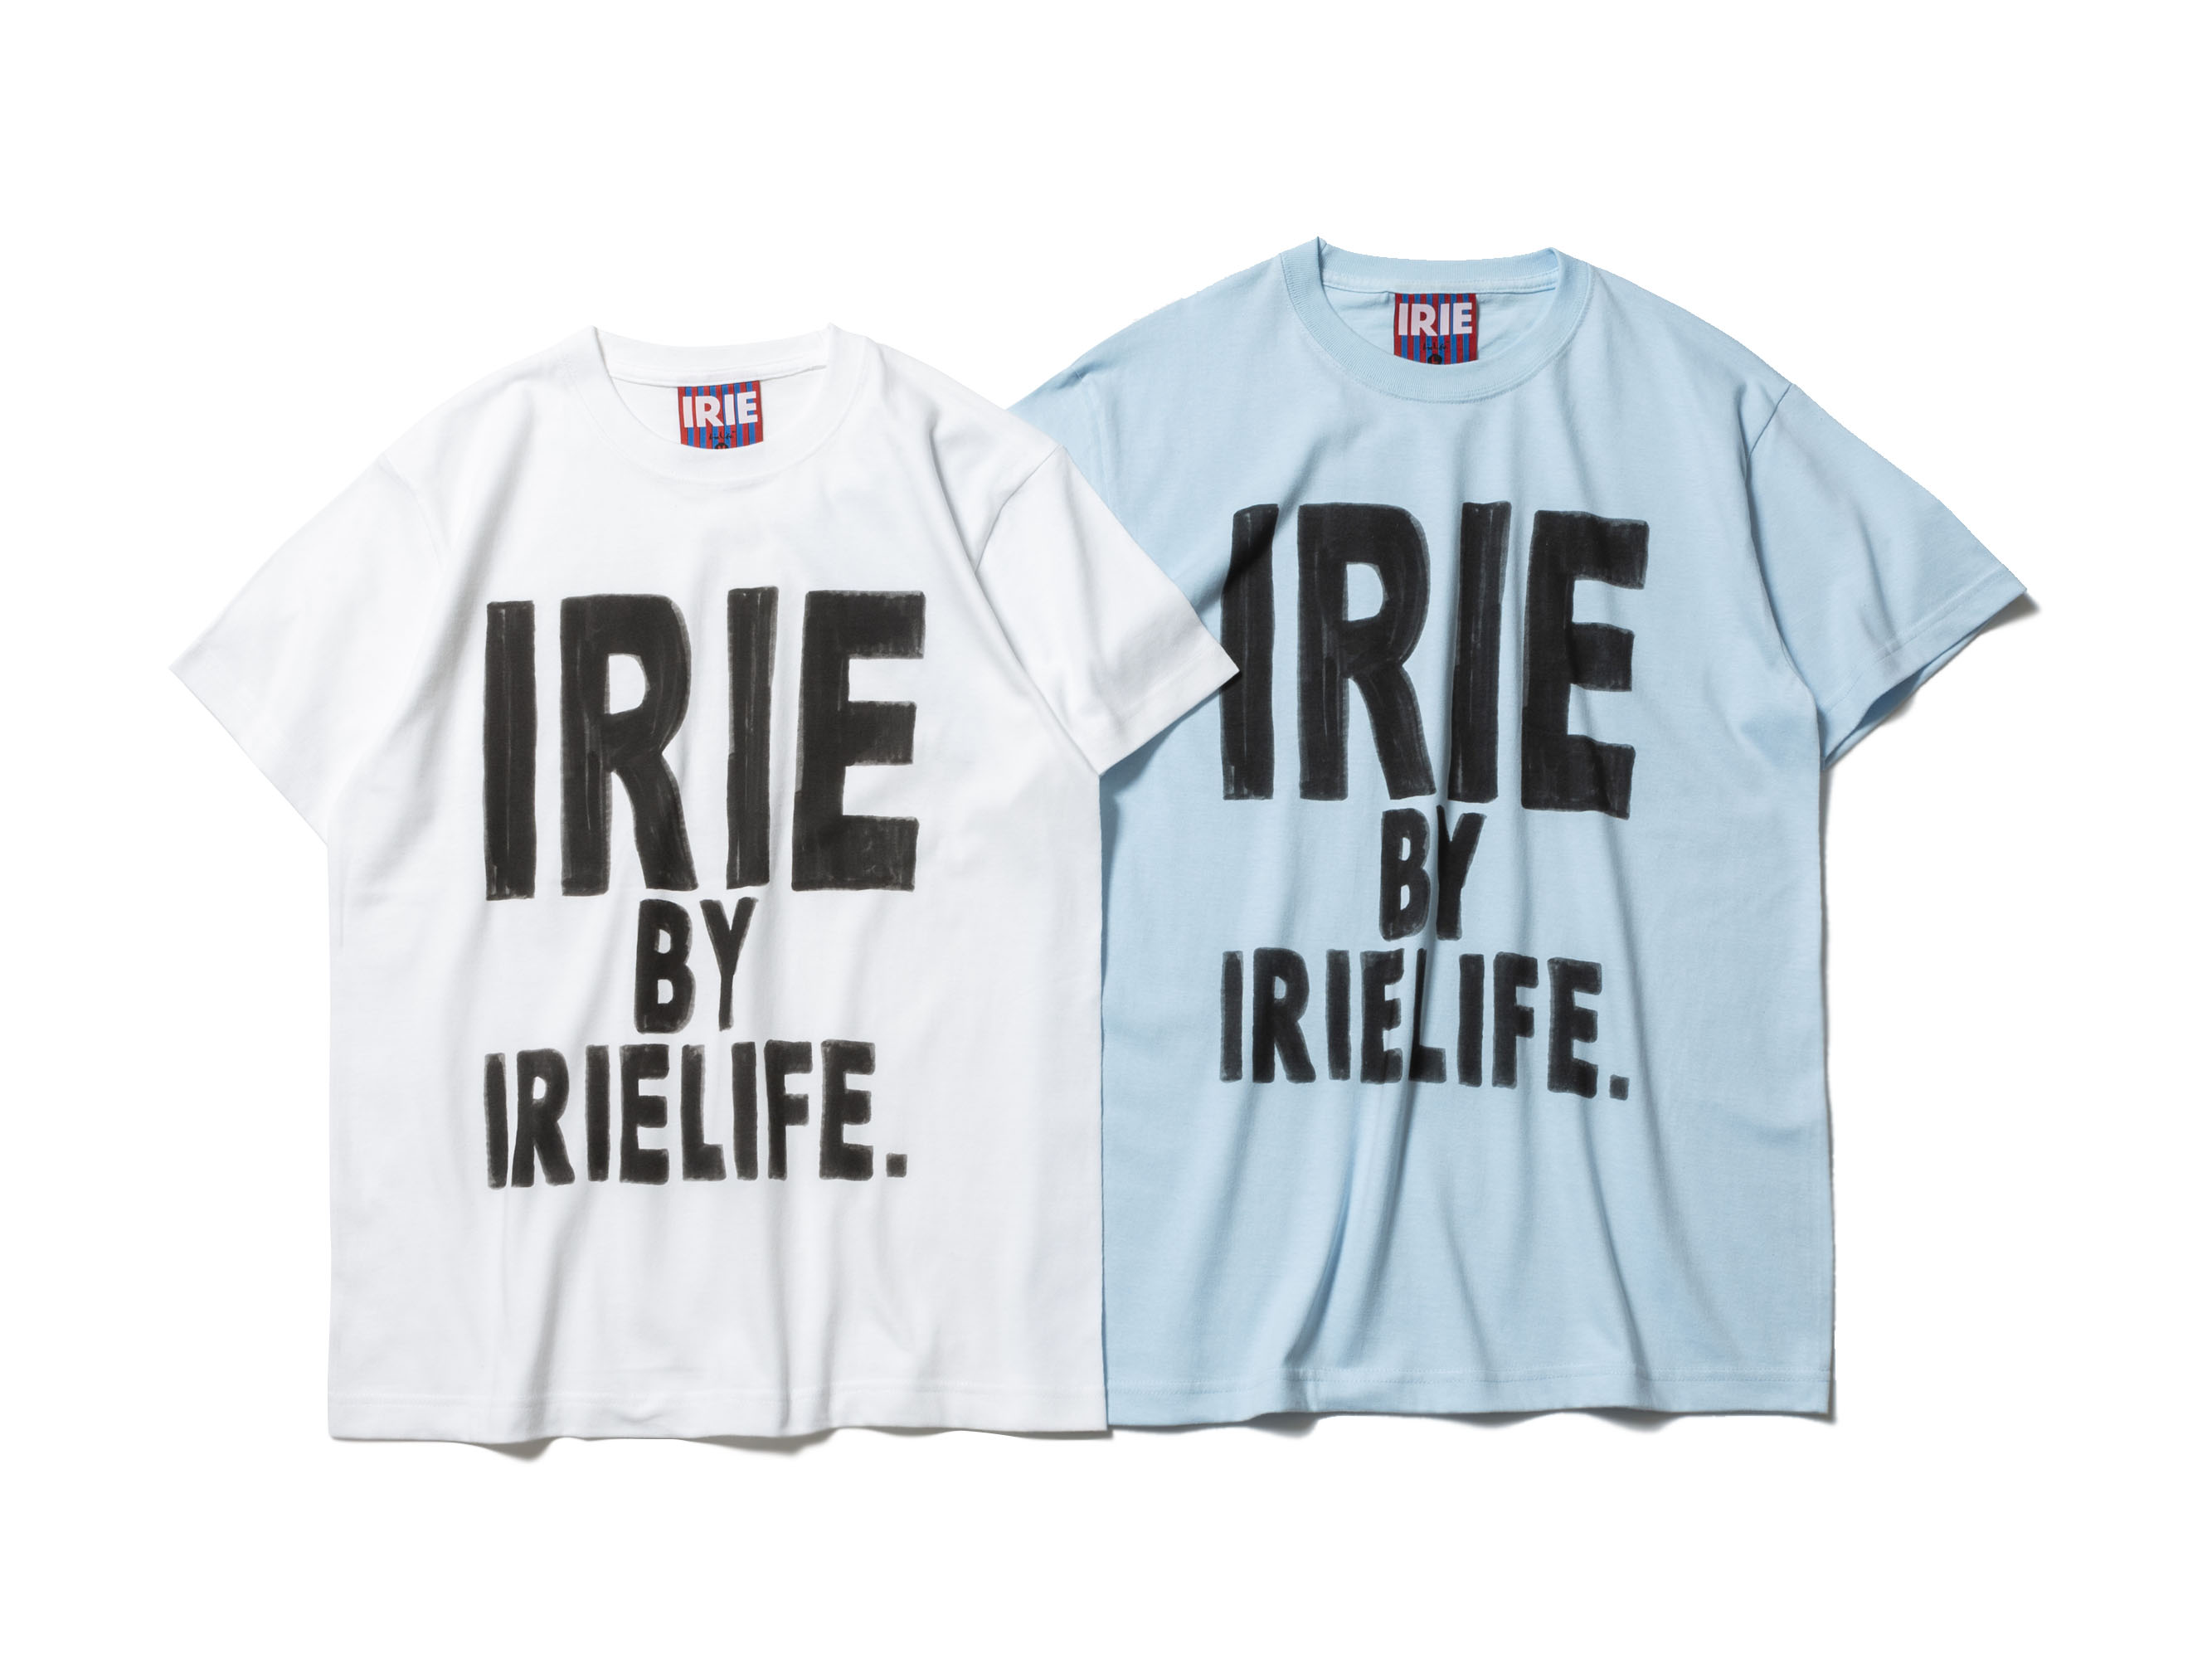 【30% OFF】BLEEDING LOGO TEE -IRIE by irielife-